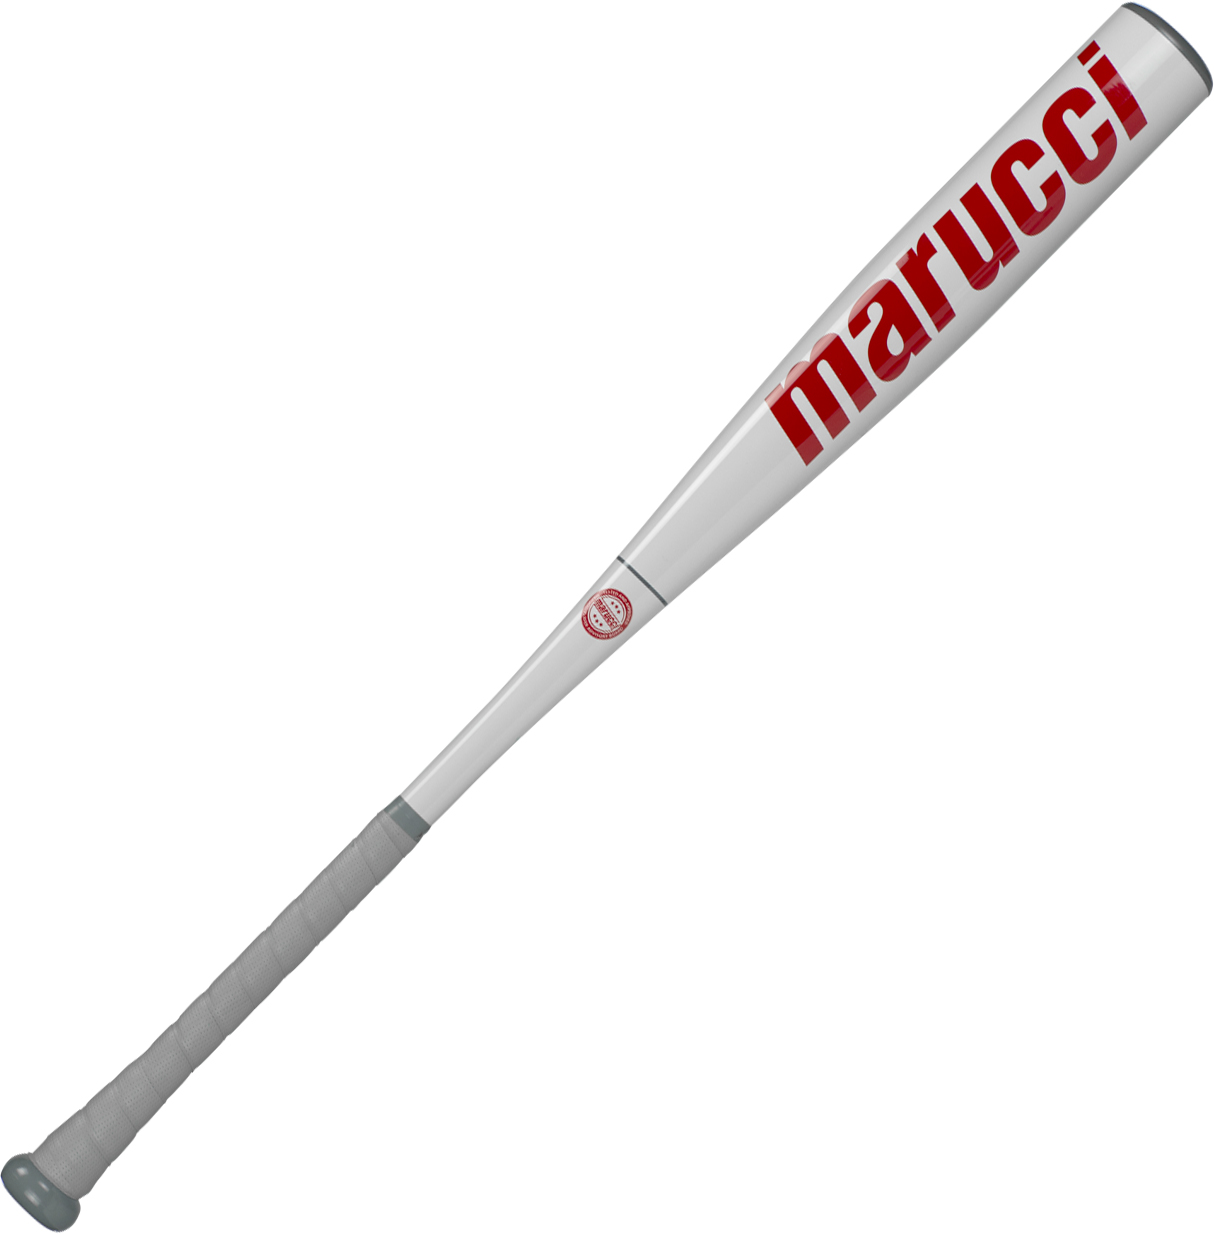 Baseball Bat Pictures To Pin On Pinterest PinsDaddy